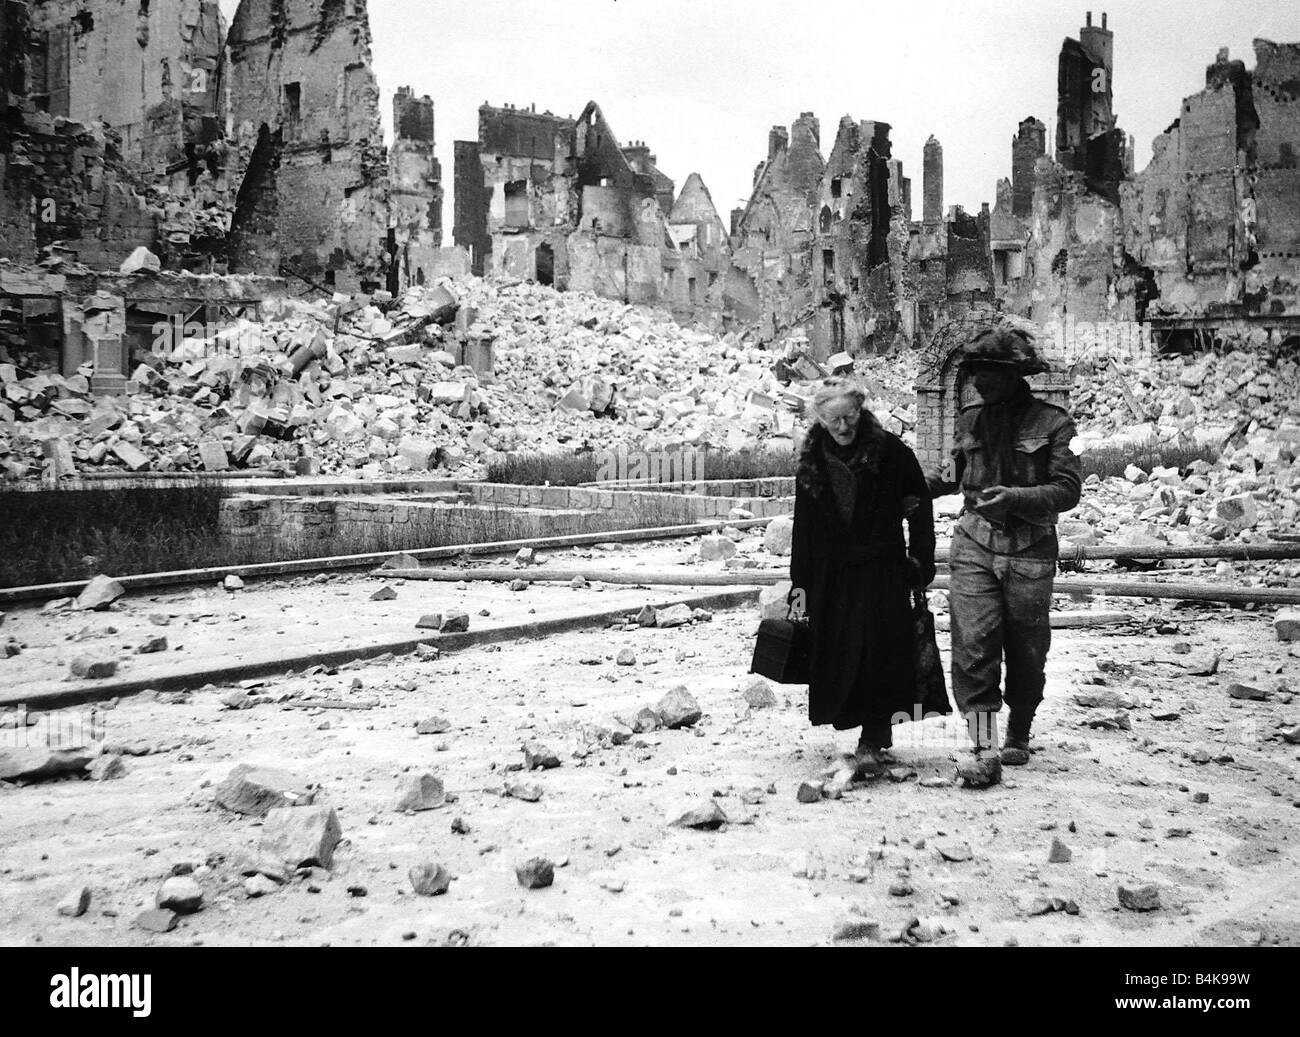 WW2 Invasion of Caen in France A soldier helps an elderly woman through the ruins - Stock Image